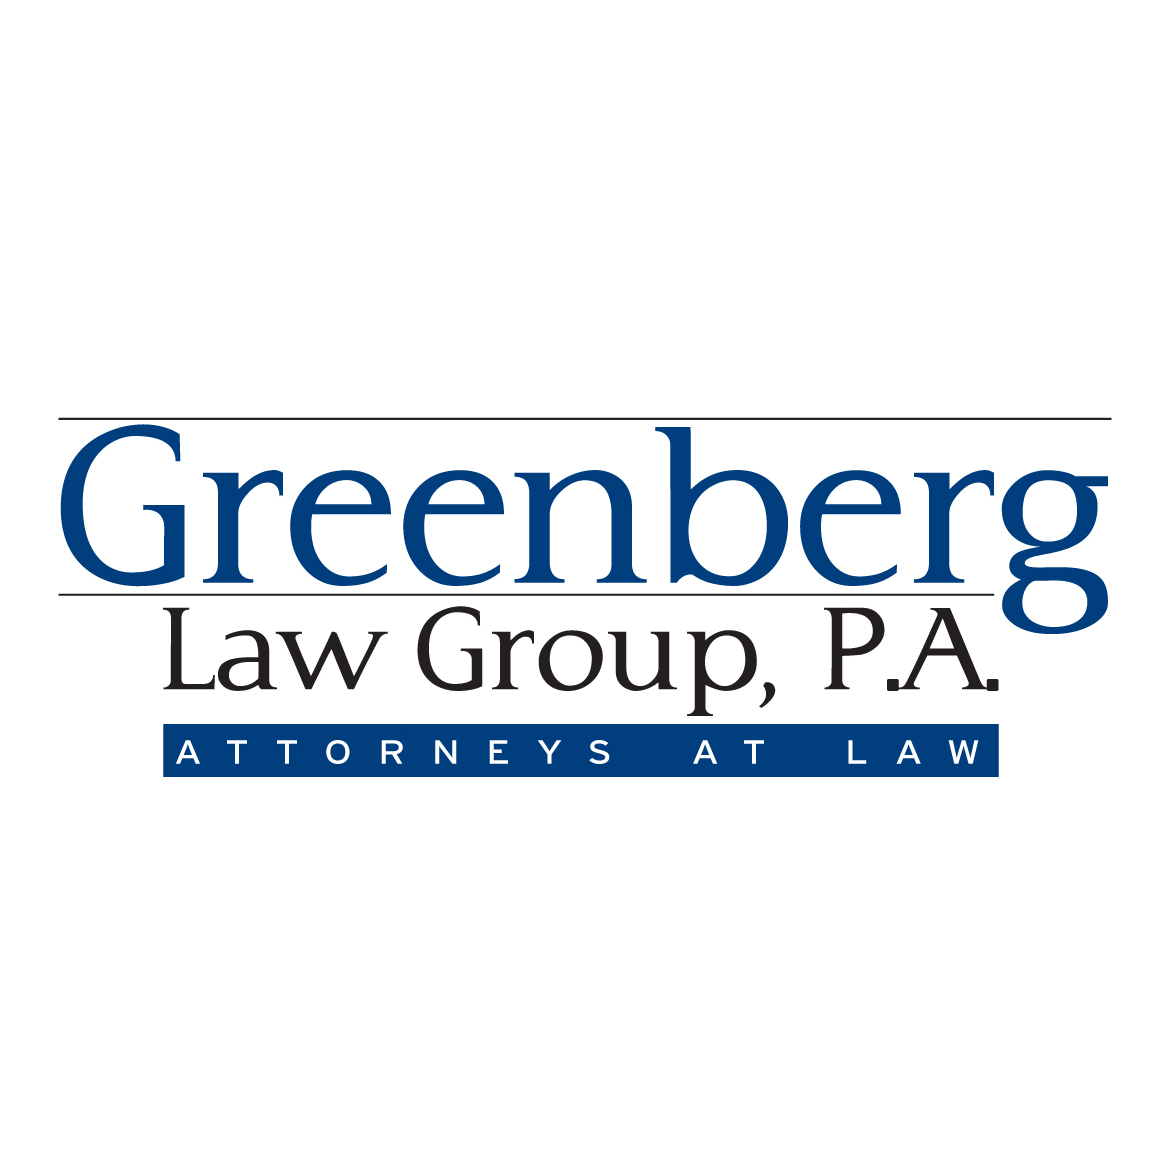 Greenberg Law Group, P.A.